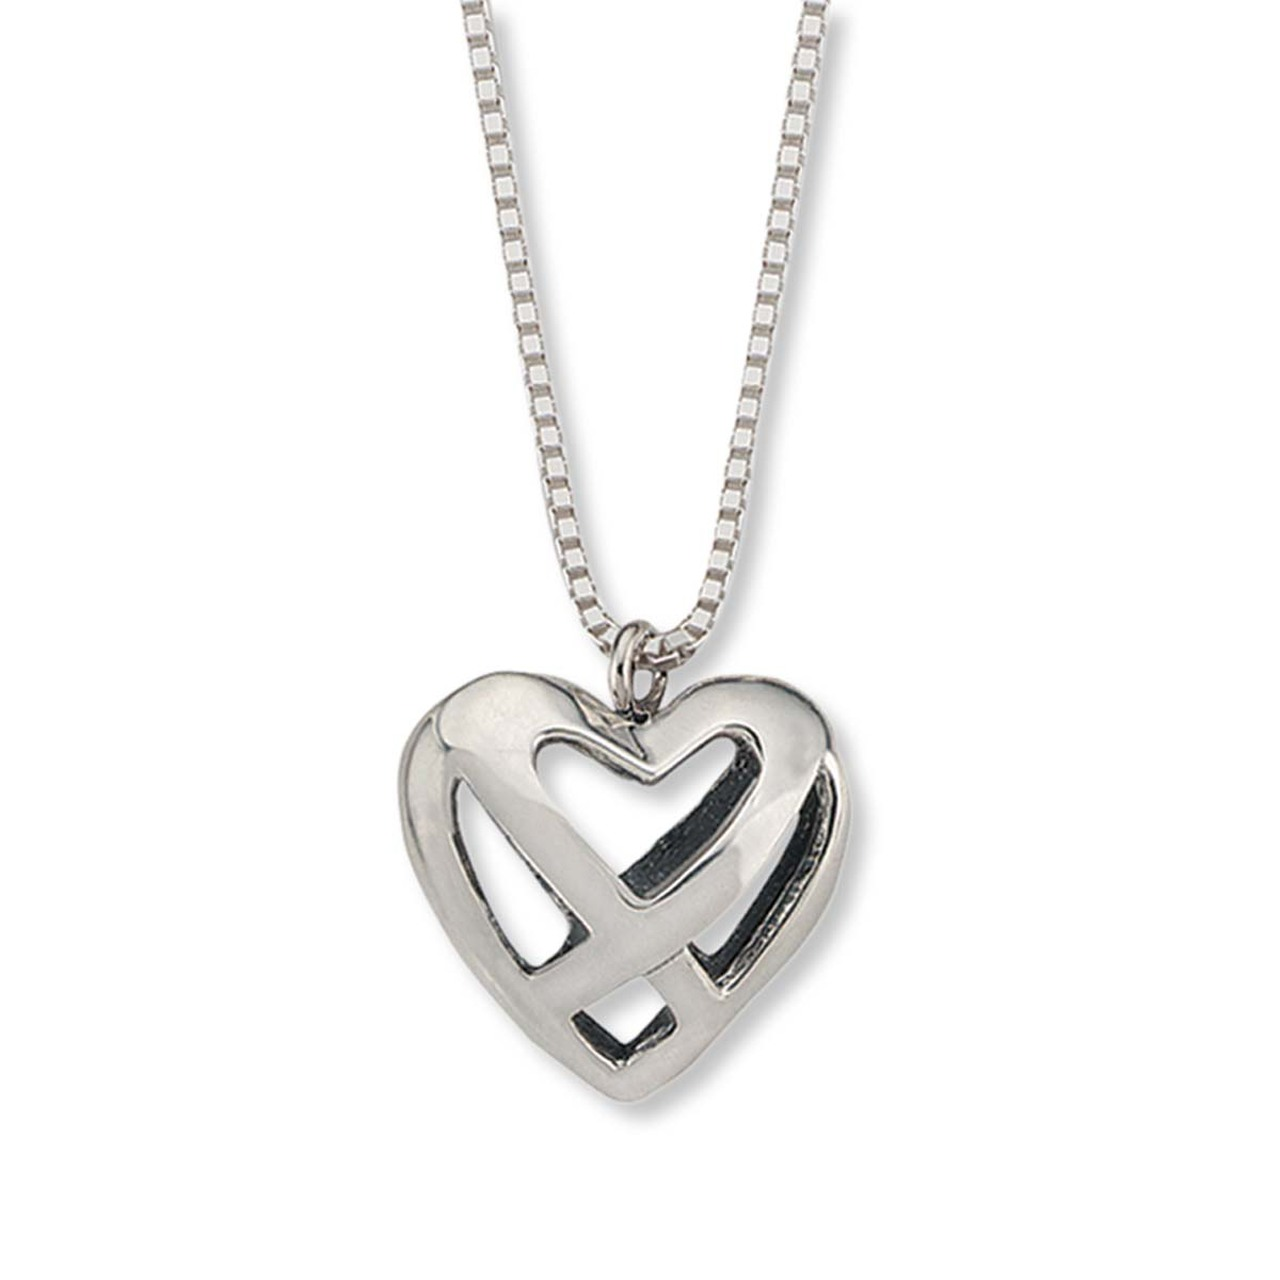 Sterling silver celtic heart pendant jh breakell sterling silver celtic heart pendant aloadofball Images